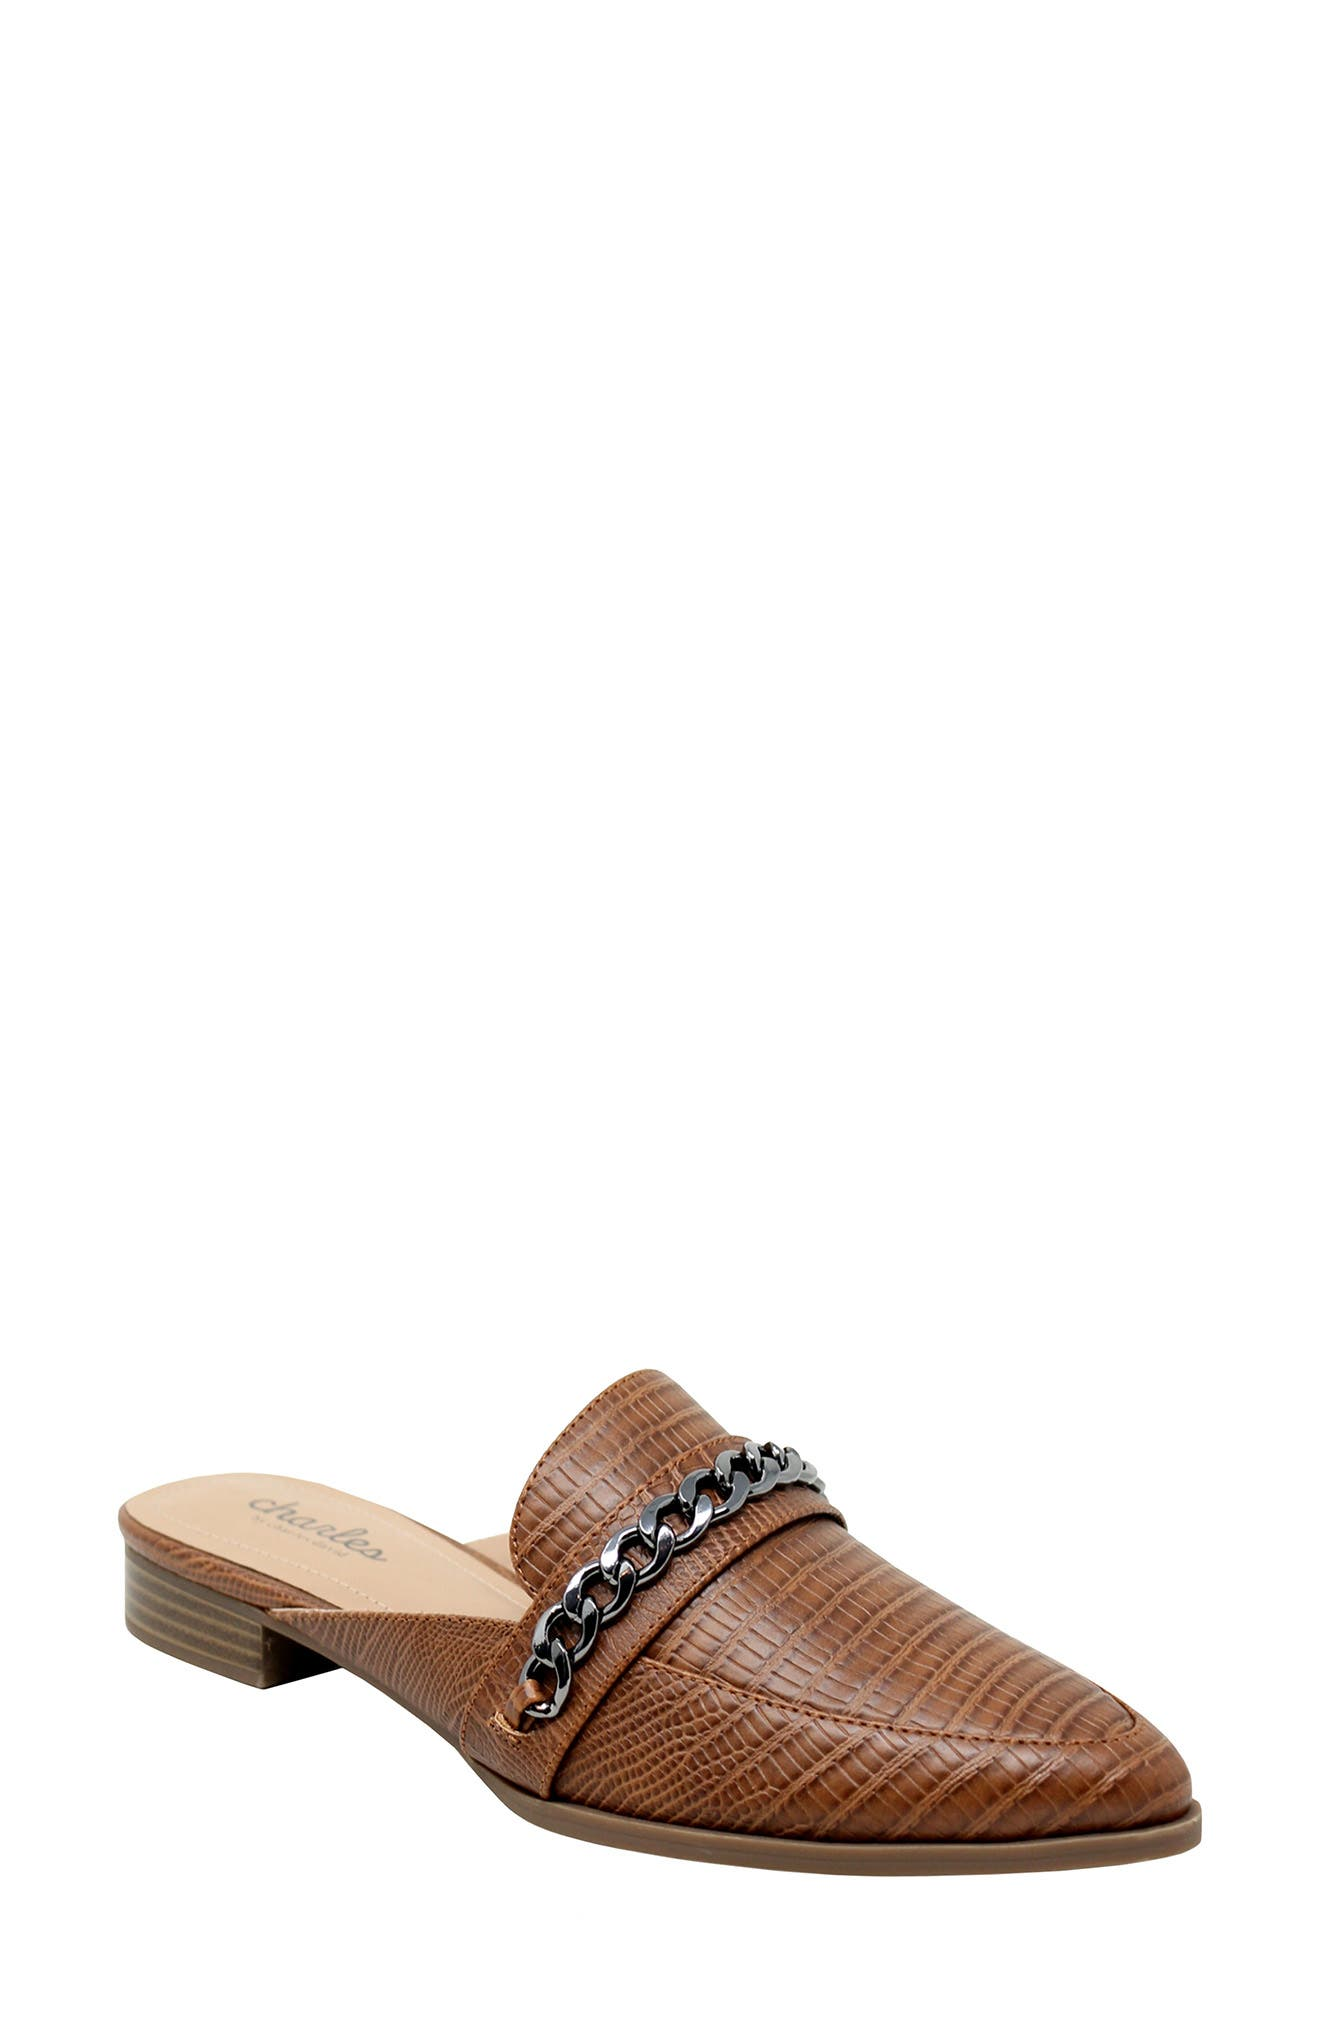 Emblem Chain Reptile Embossed Pointed Toe Mule